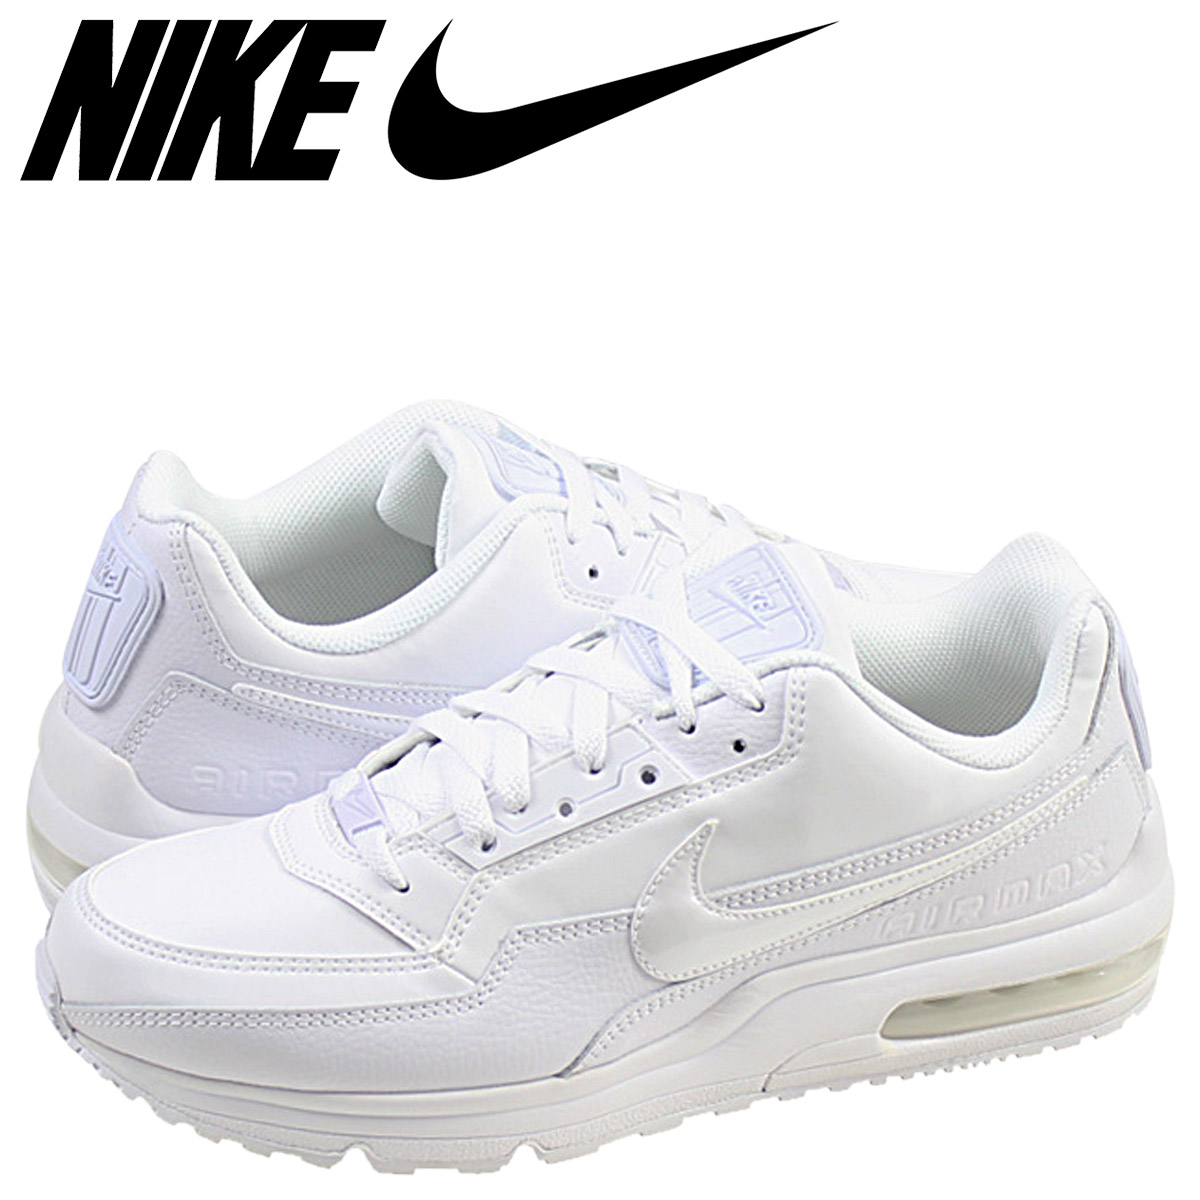 Nike NIKE AIR MAX LTD 3 sneakers Air Max Ltd 3 leather mens 687977 111 WHITEWHITE white [12 26 new stock] [regular] </p>                     </div> 		  <!--bof Product URL --> 										<!--eof Product URL --> 					<!--bof Quantity Discounts table --> 											<!--eof Quantity Discounts table --> 				</div> 				                       			</dd> 						<dt class=